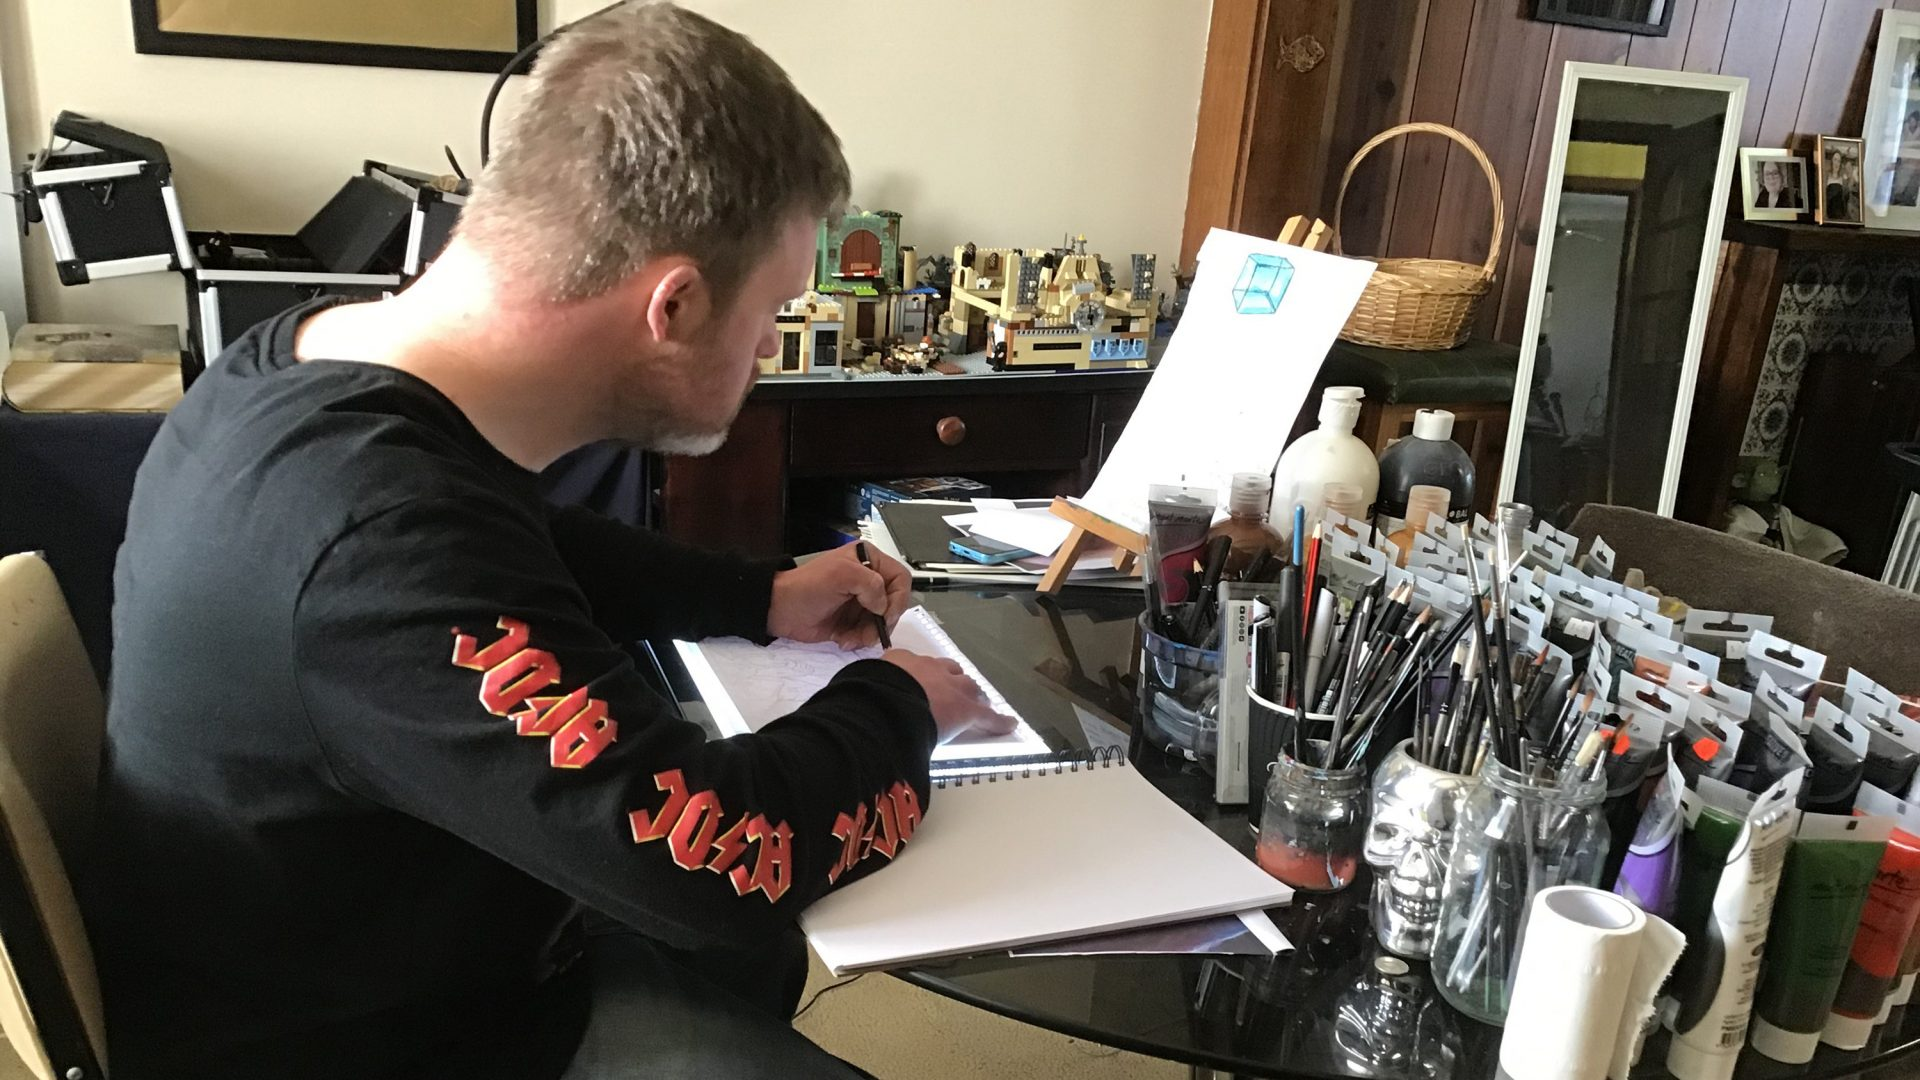 An artist is drawing in a sketch book at a desk.